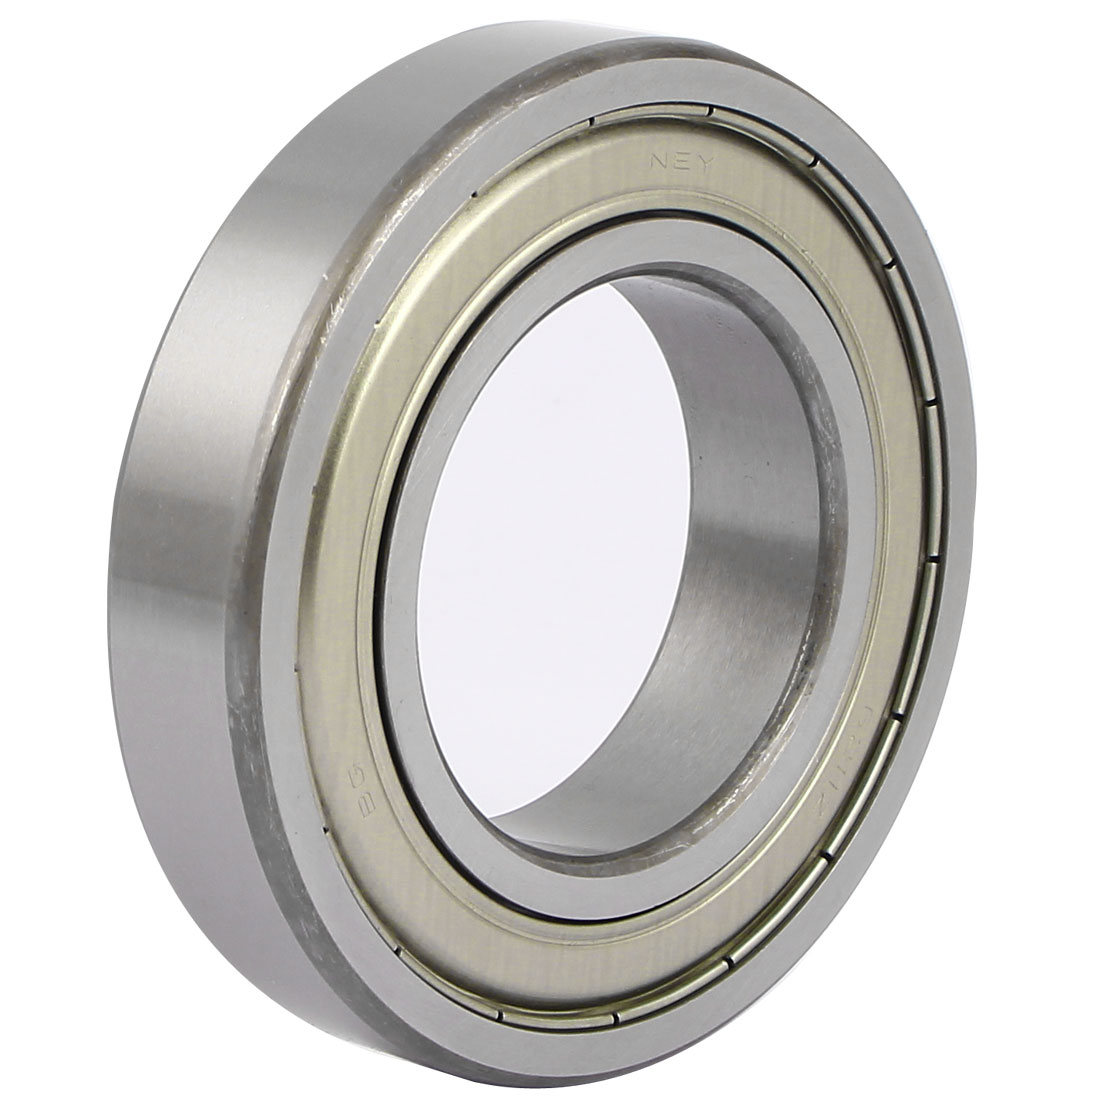 ZZ6211 100mm x 54.5mm x 21mm Double Shielded Deep Groove Ball Wheel Bearing